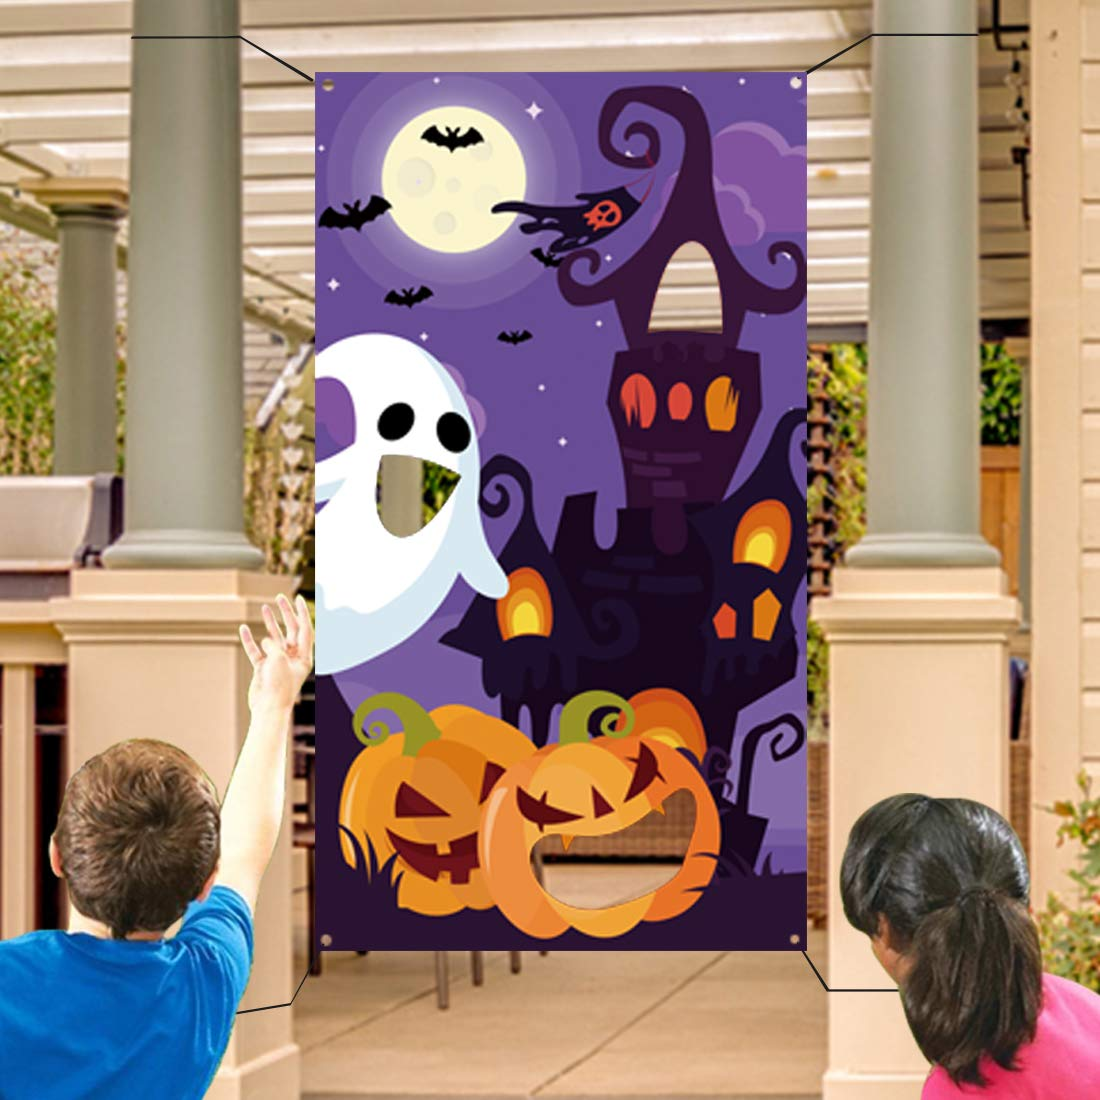 Halloween Bean Bag Toss Games+3 Bean Bags for Kids/Childrens/Family Party, Halloween Night Theme Indoor/Outdoor Parties Supplies Decoration Pumpkin Castle Ghost Bat Moon Toss Game Banner for Teens